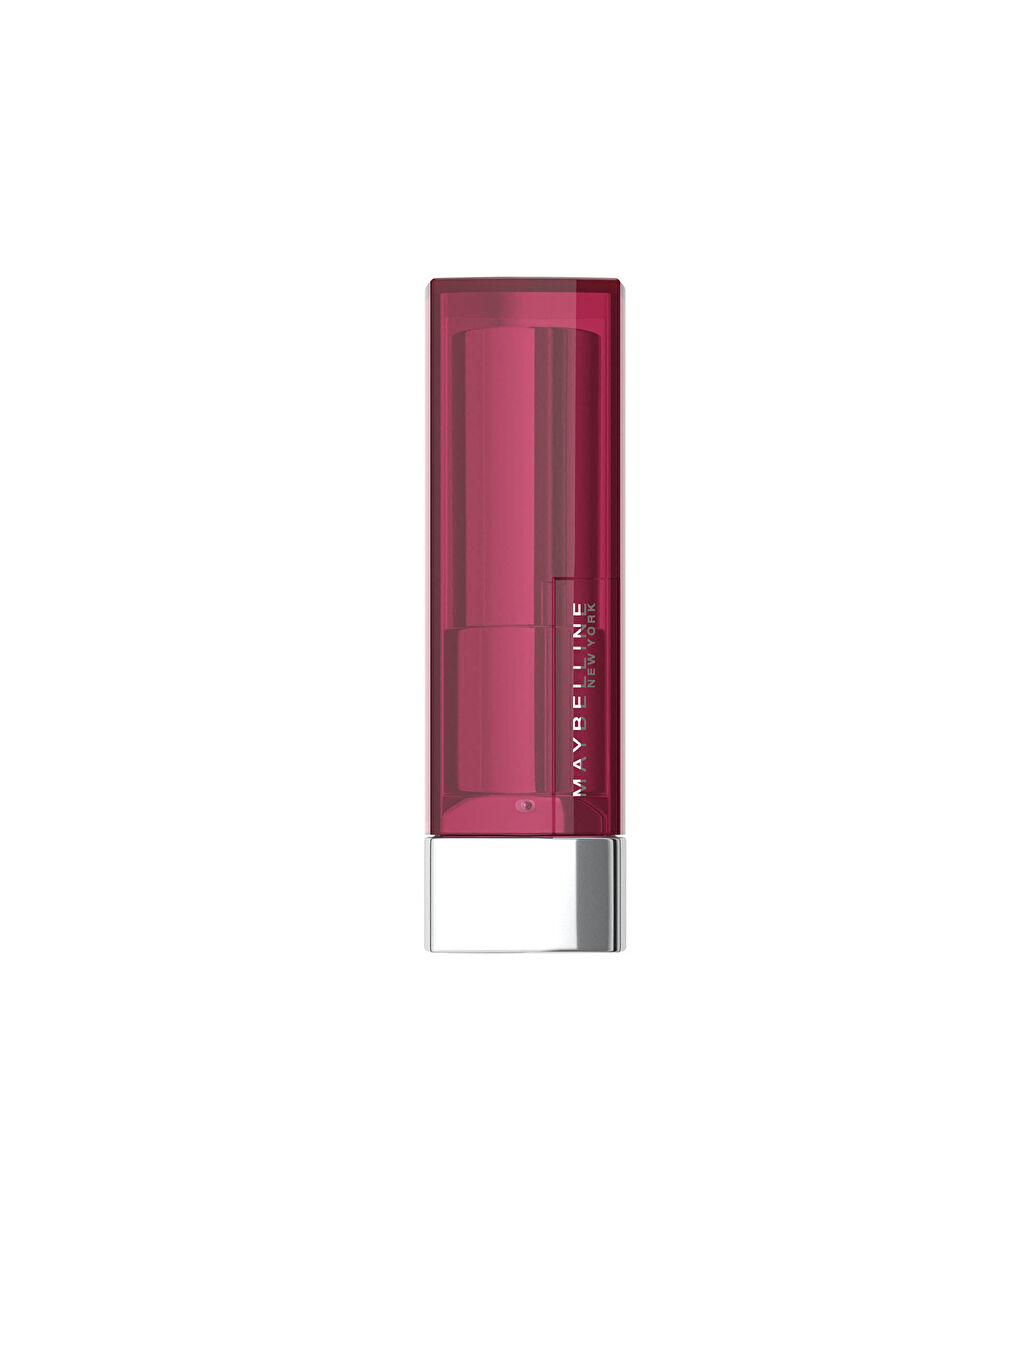 Kadın Maybelline New York Color Sensational Ruj - 200 Rose Embrace - Gül Kurusu